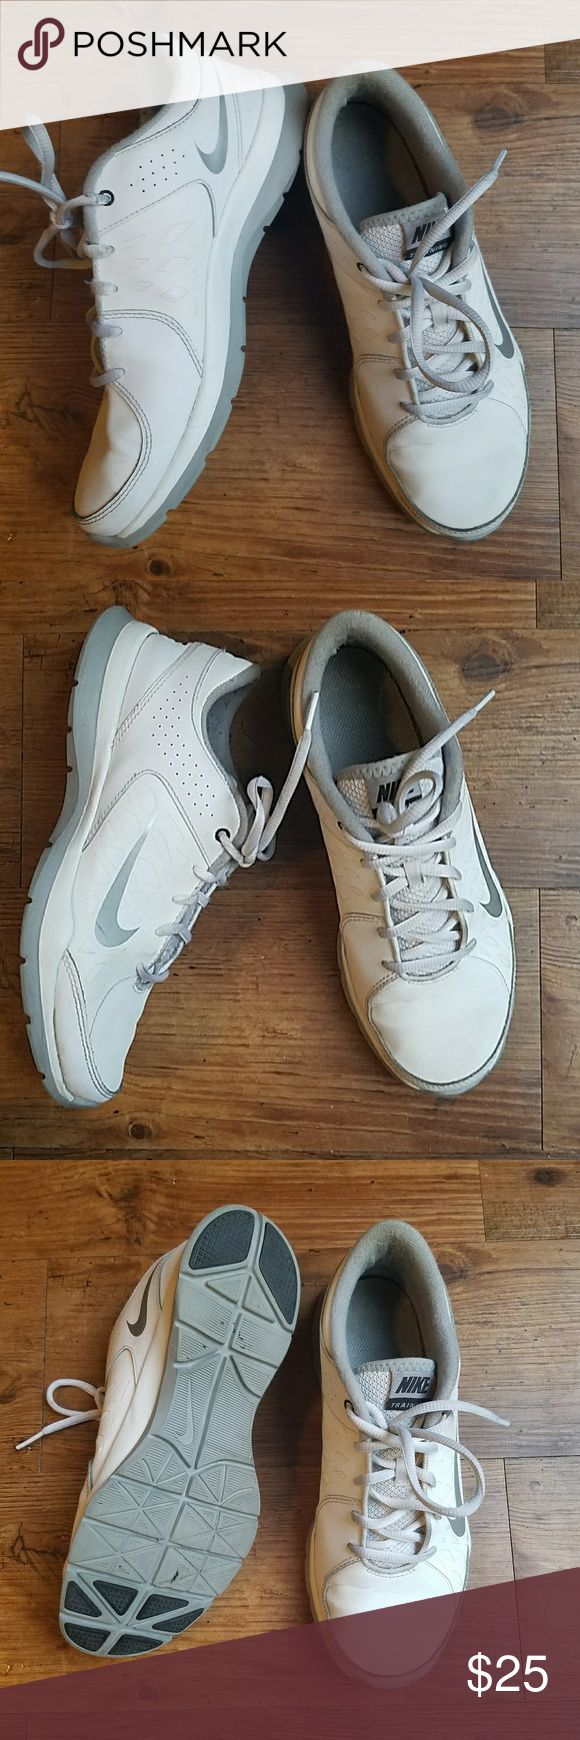 White Nike Trainers Nike tennis shoes in excellent condition. Minimal wear on bottom toe pad and inner heel (see photos). Very comfy shoes, great for constant walking. True to Nike sizing. White and grey coloring Nike Shoes Athletic Shoes